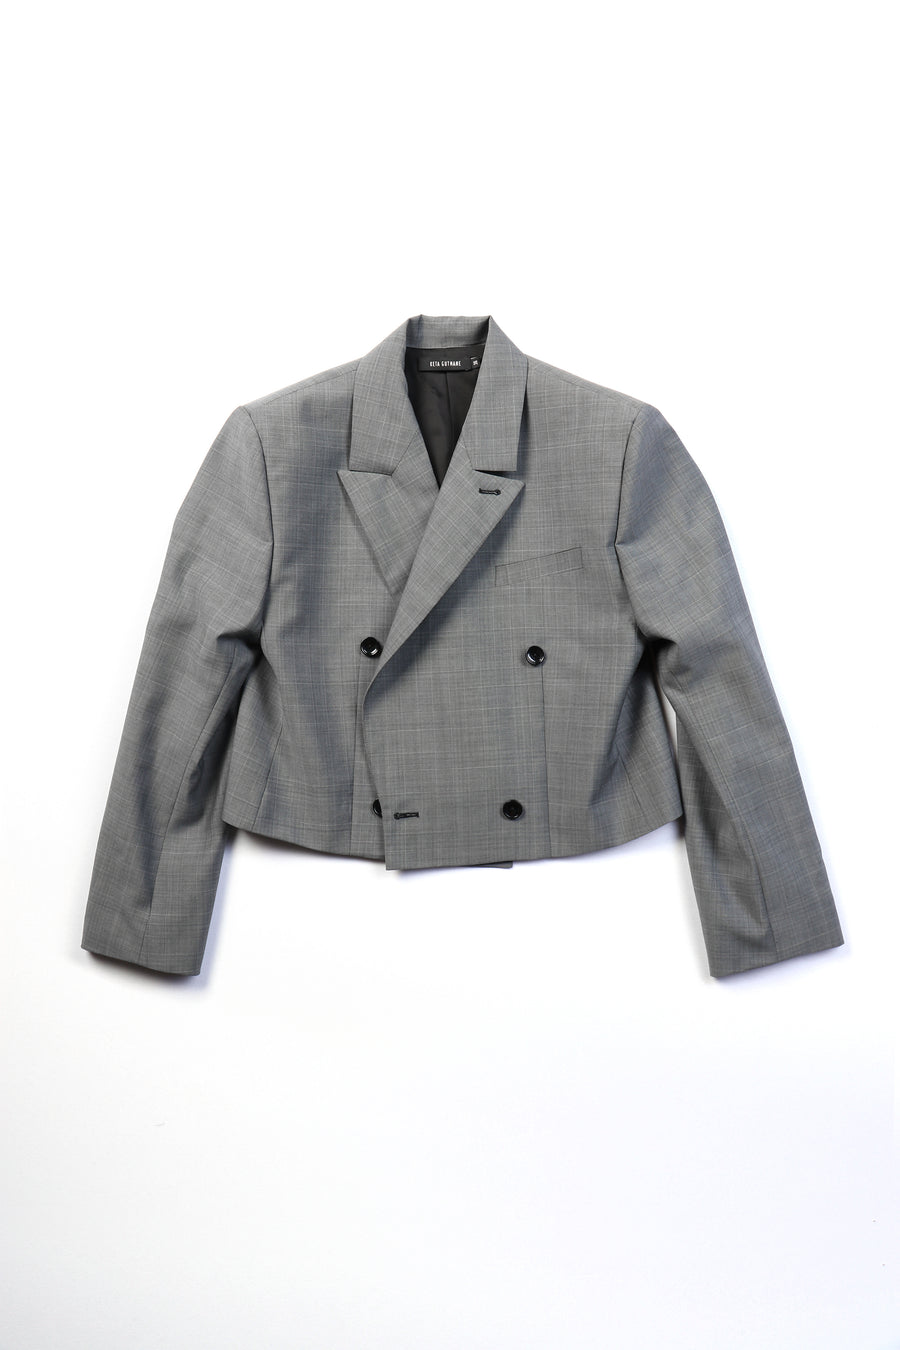 CROPPED GREY SUIT JACKET